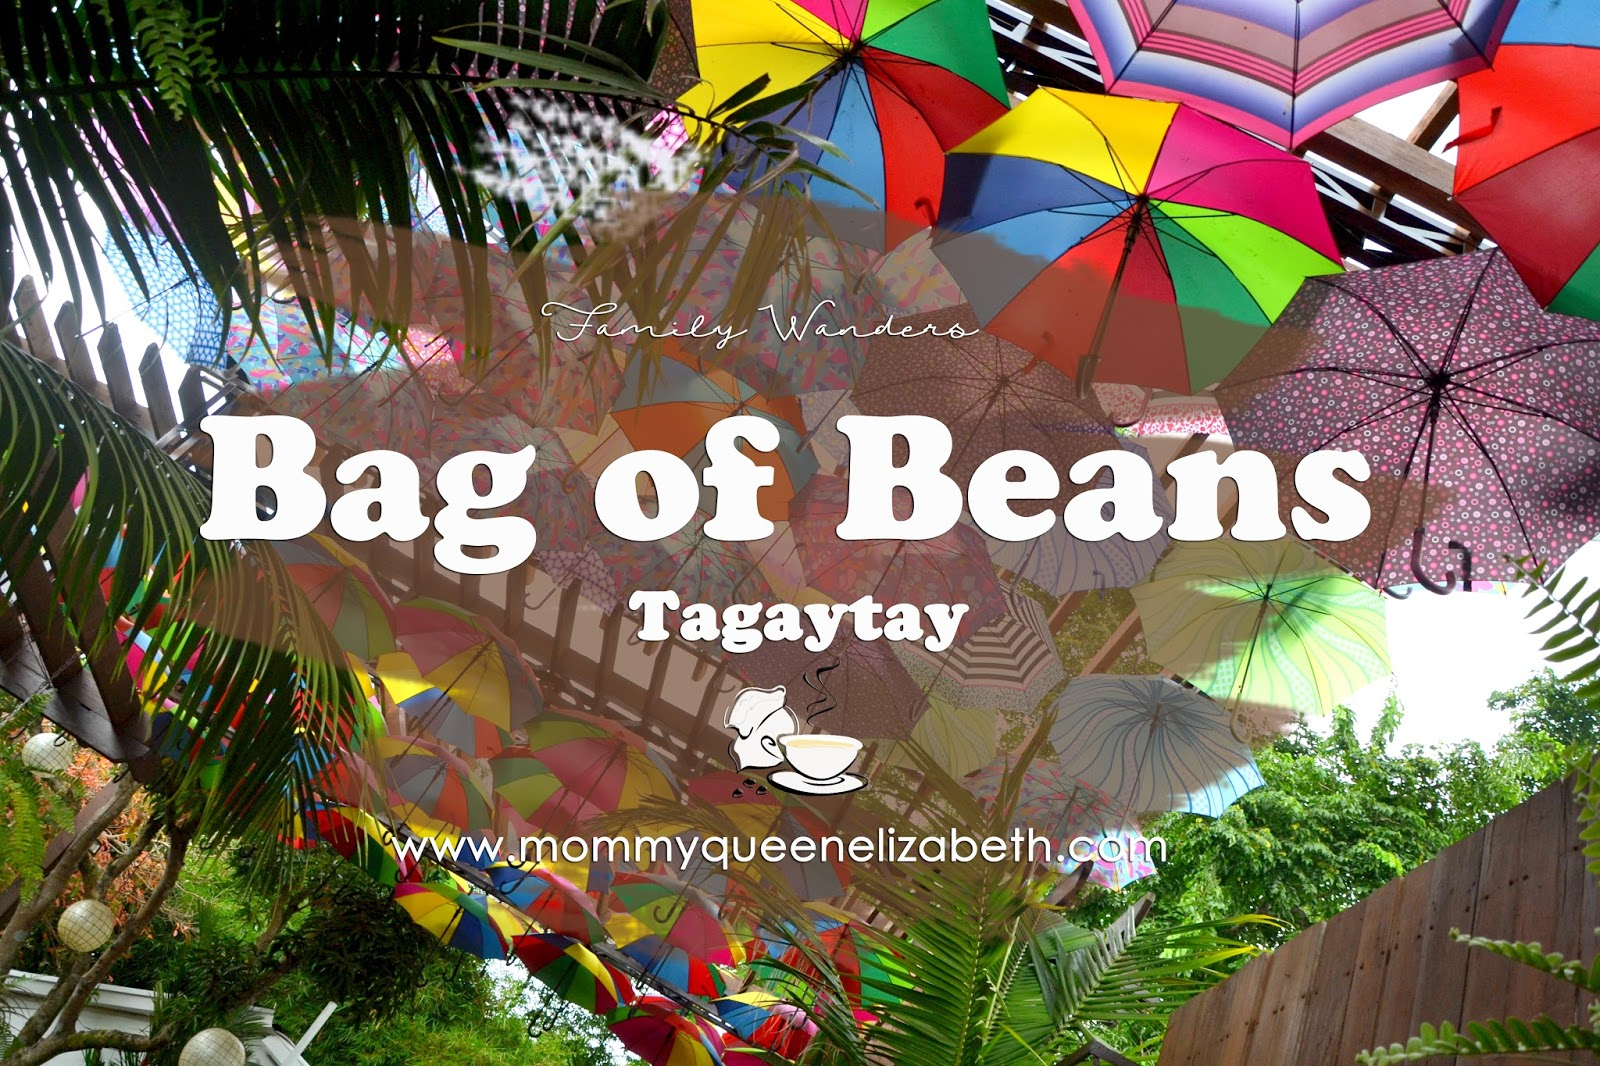 Swell Weekend Brunch Buffet At Bag Of Beans Tagaytay Mommy Dailytribune Chair Design For Home Dailytribuneorg